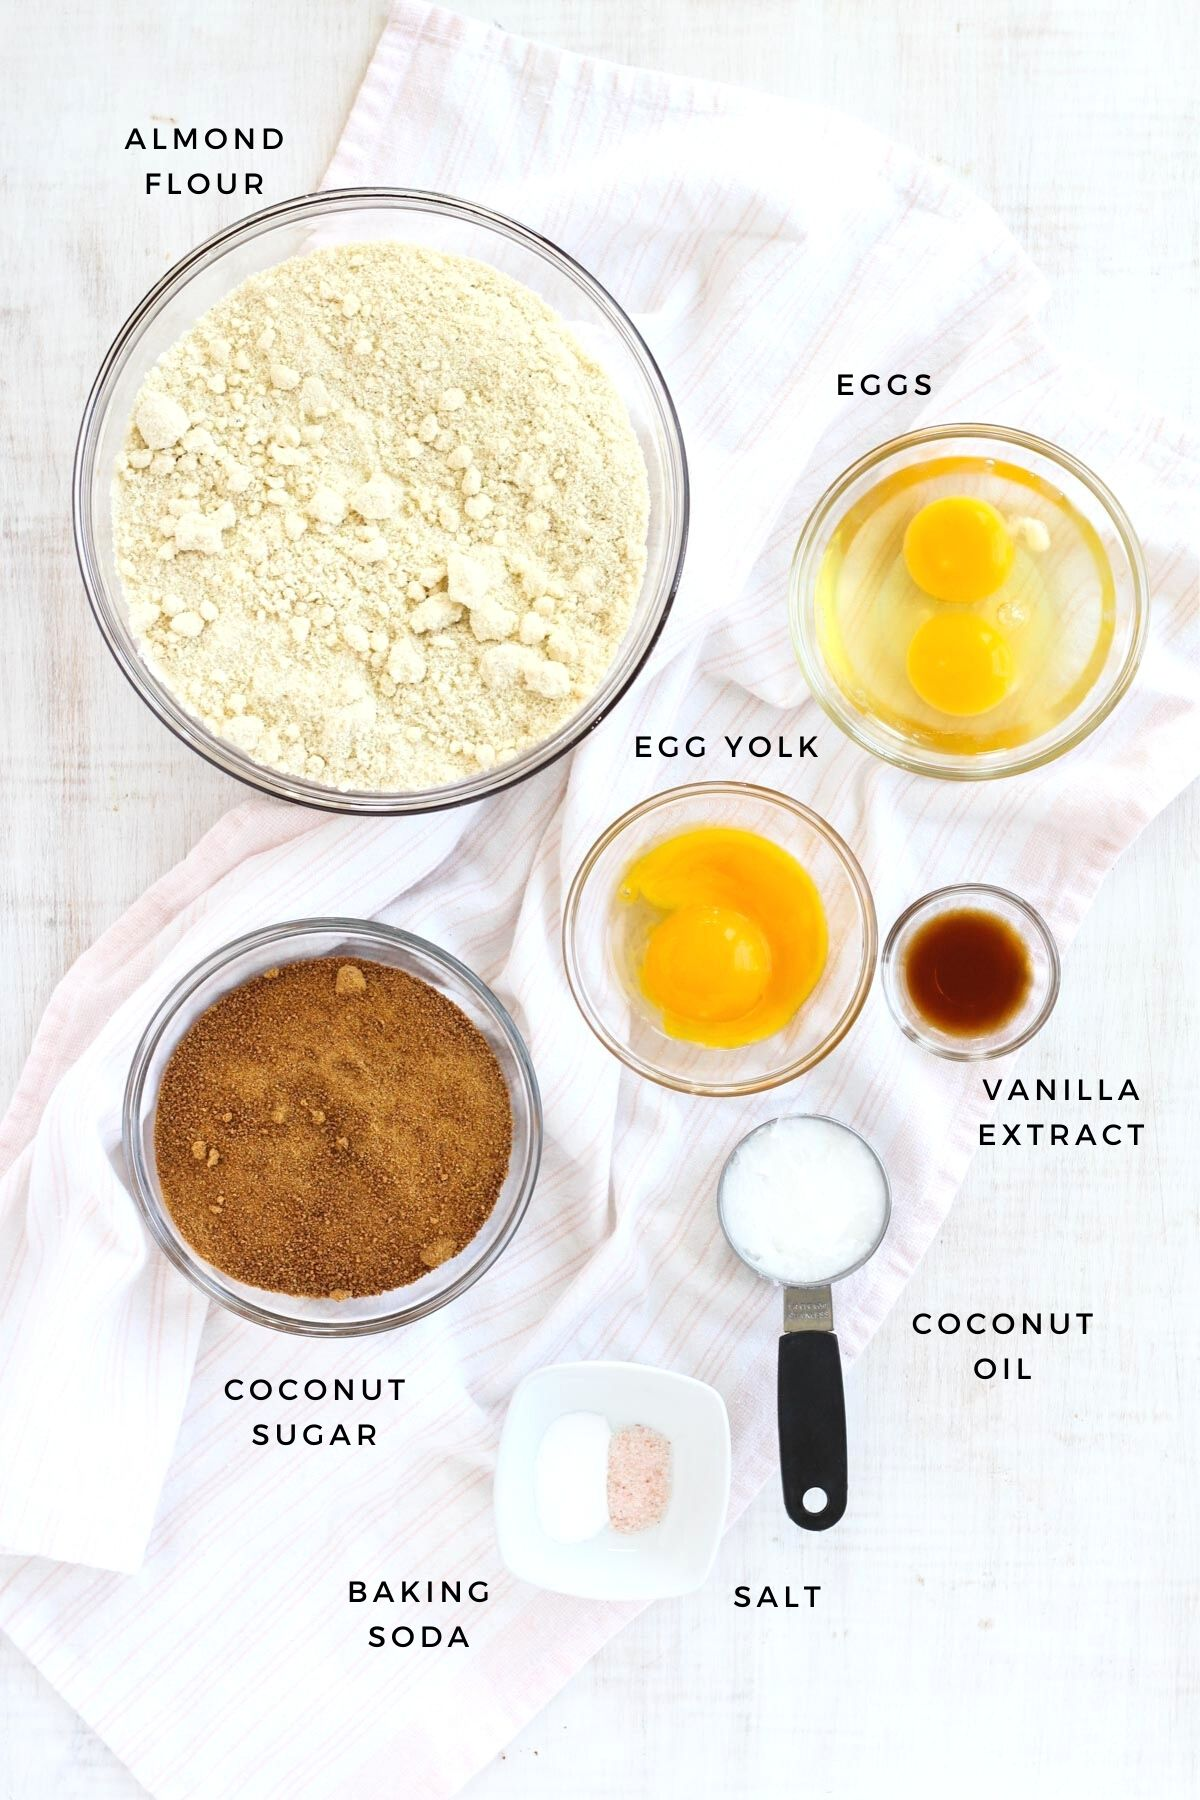 Ingredients laid out for this sugar cookie recipe.